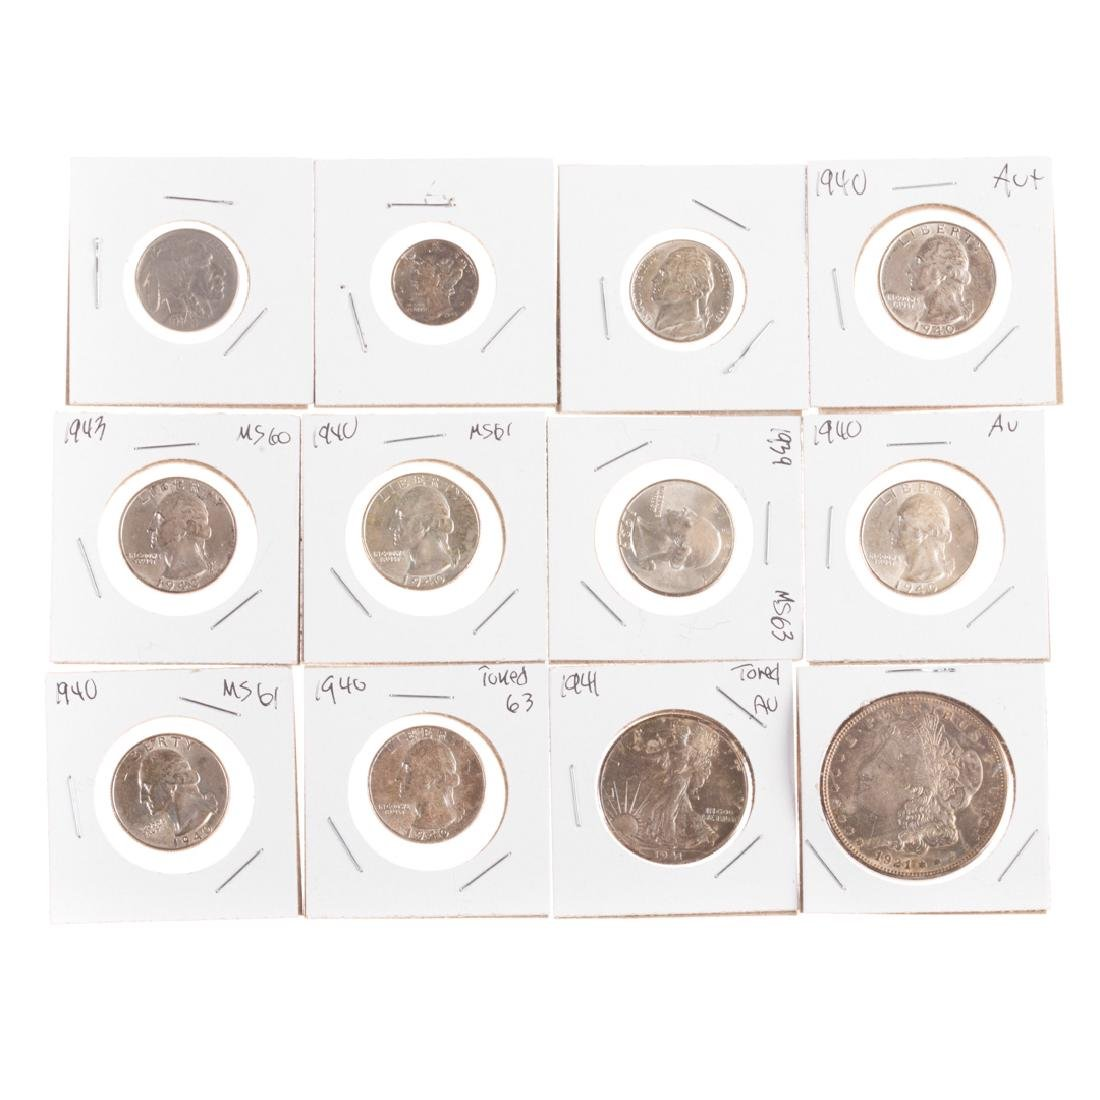 [US] Nice Group of Hi-Grade Mid-20th Century Coins